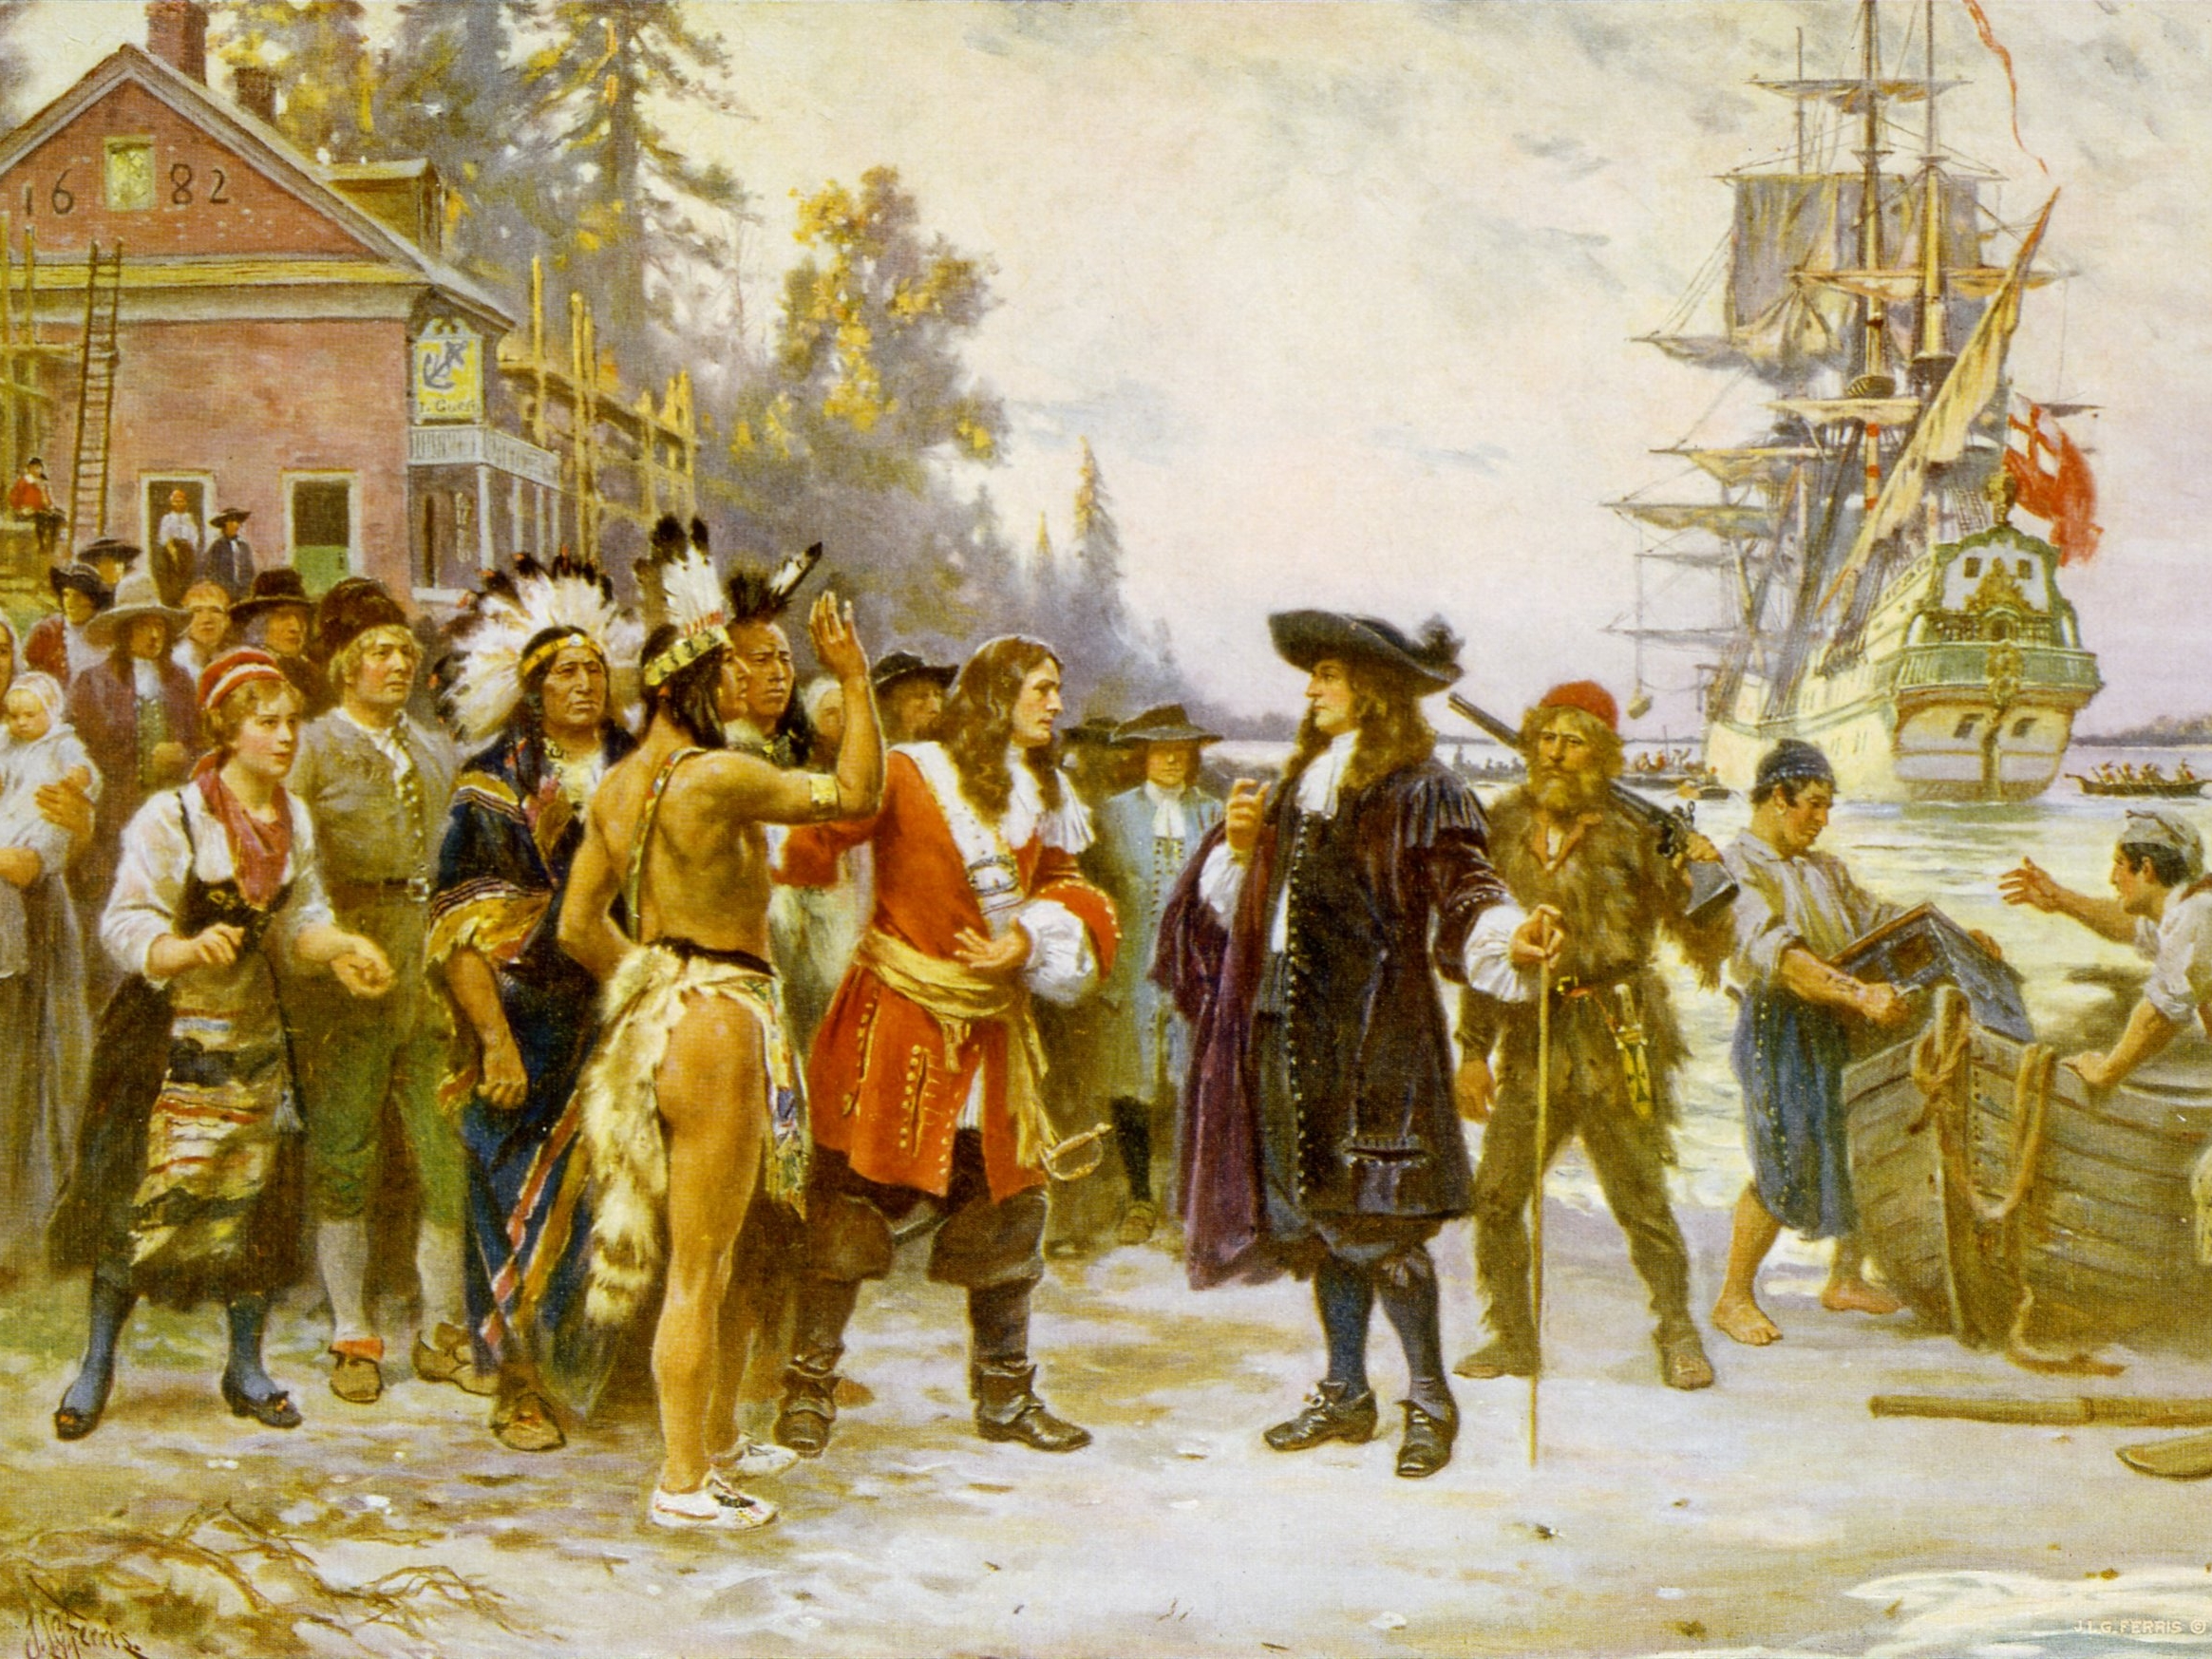 Metacom, King Philip of the Wampanoag tribe, waged war against English who took over his land. The Iroquois fought the French in Quebec while Quaker William Penn founded Philadelphia. When Charles II died, Catholic James SECond wore the English crown, but William and Mary became King and Queen in the Glorious Revolution of 1688.